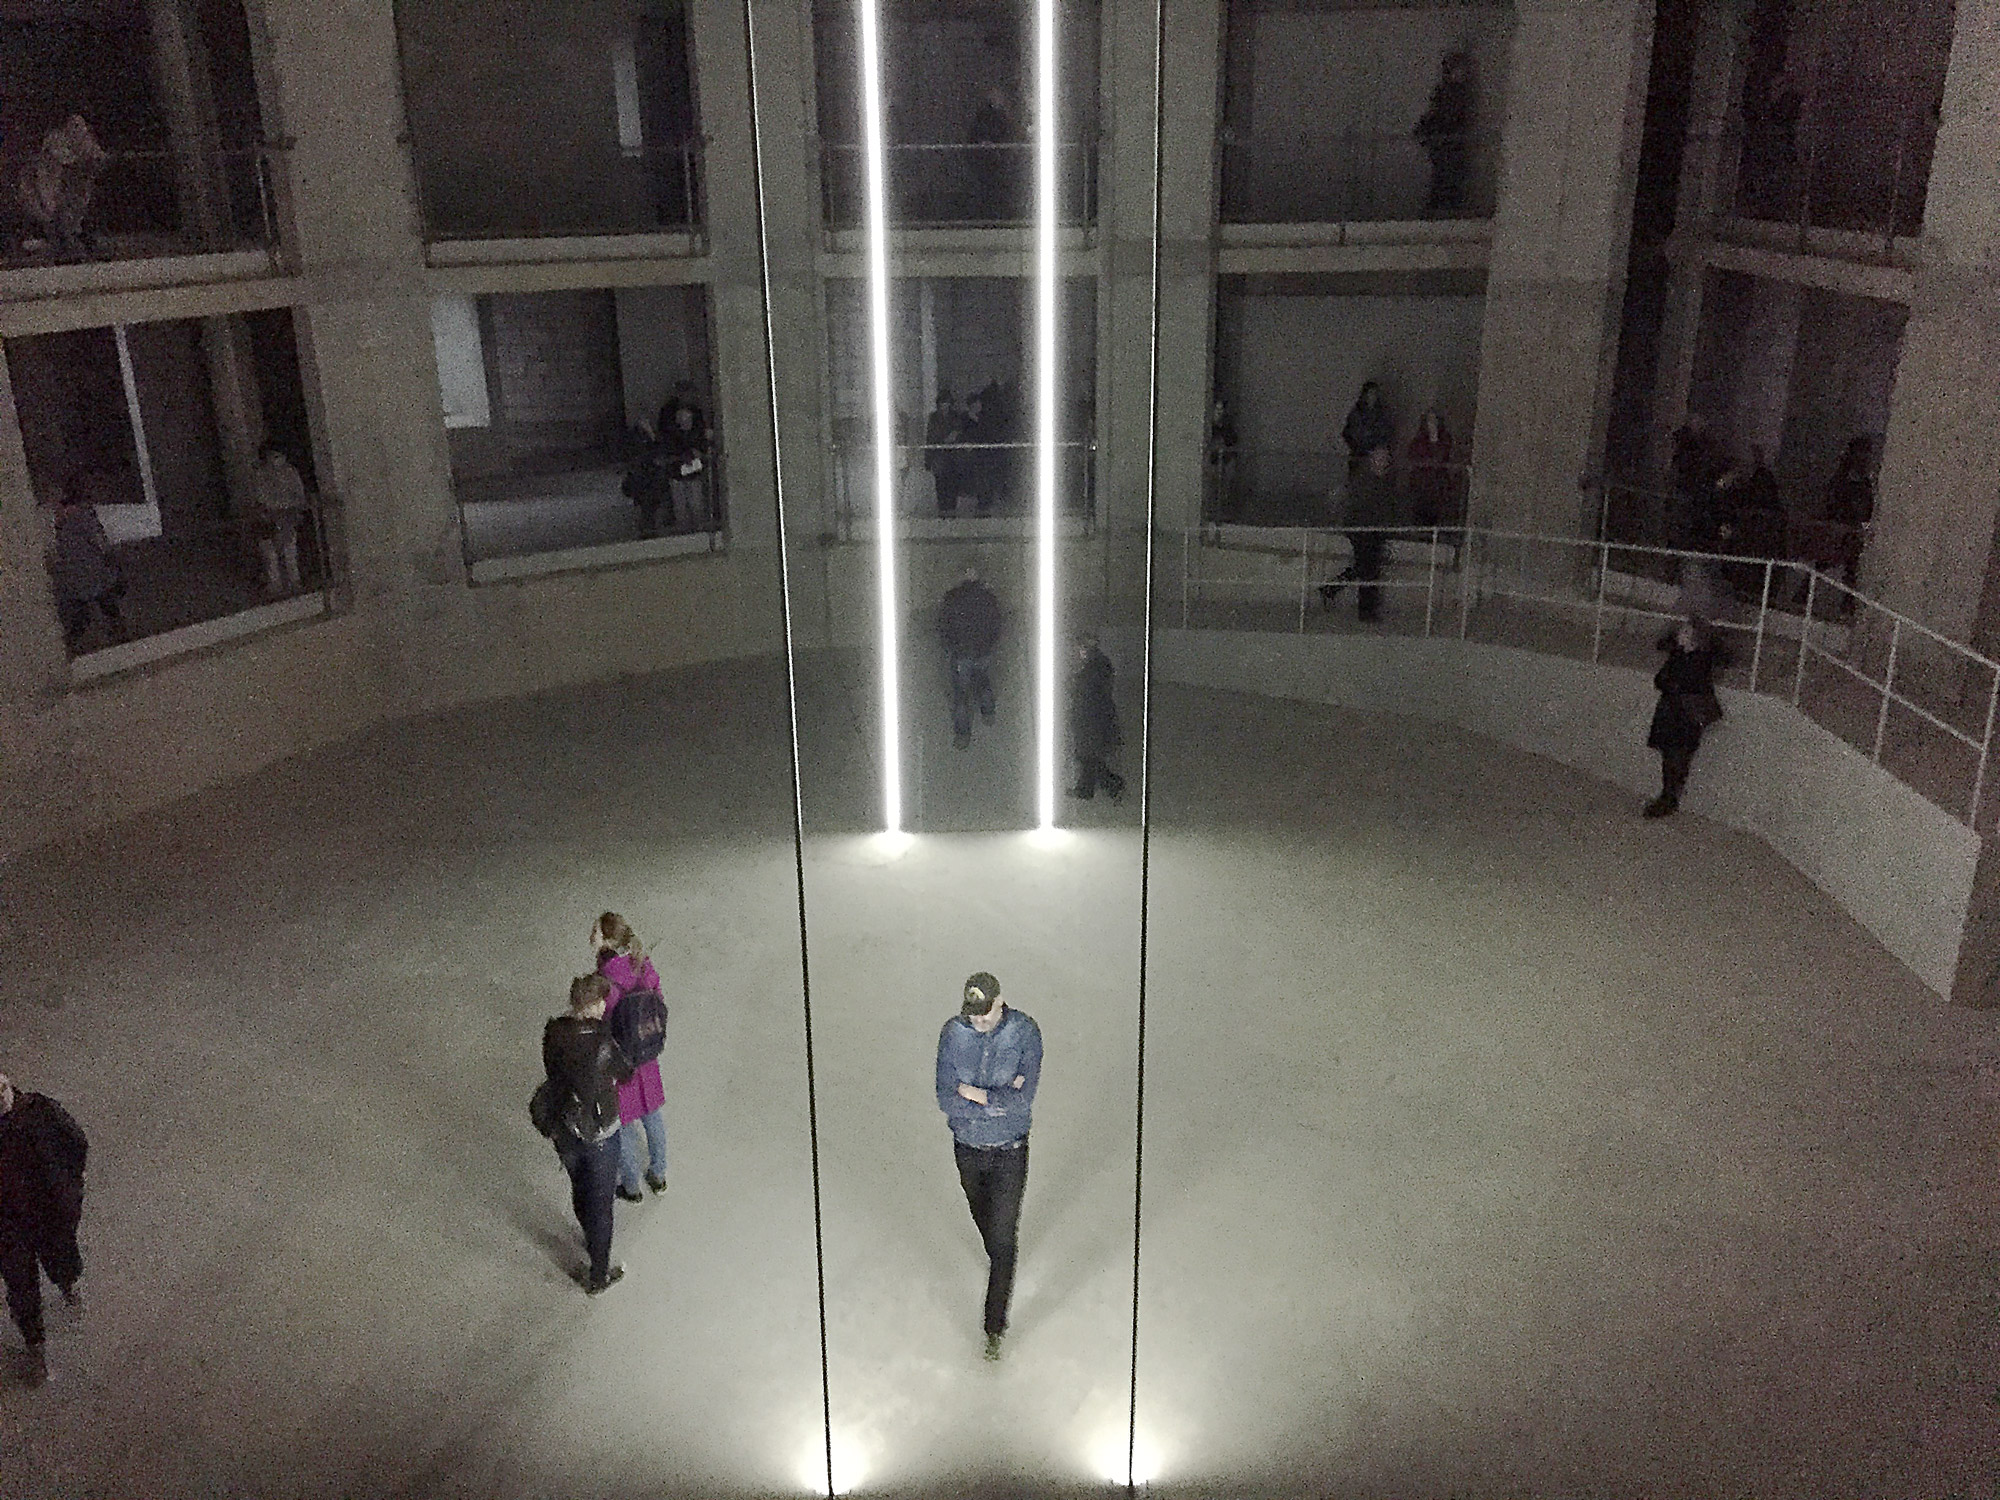 People walk around a large concrete space with apertures on two floors. There are vertical beams of light, cast up from the floor.